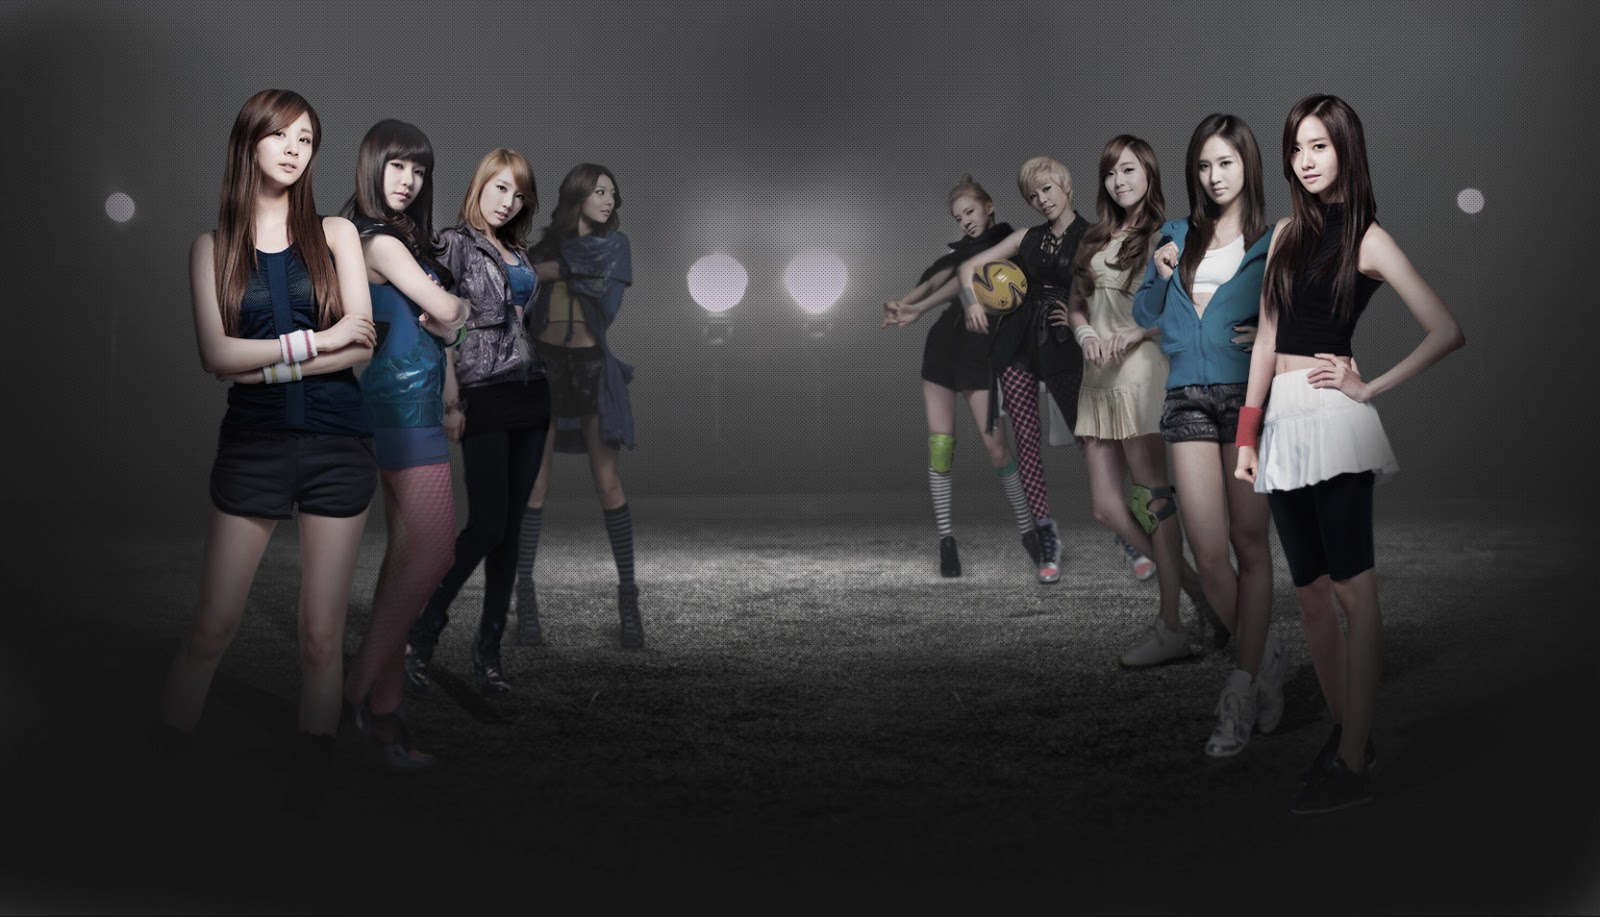 SNSD Girls Generation Freestyle Sports Wallpaper HD